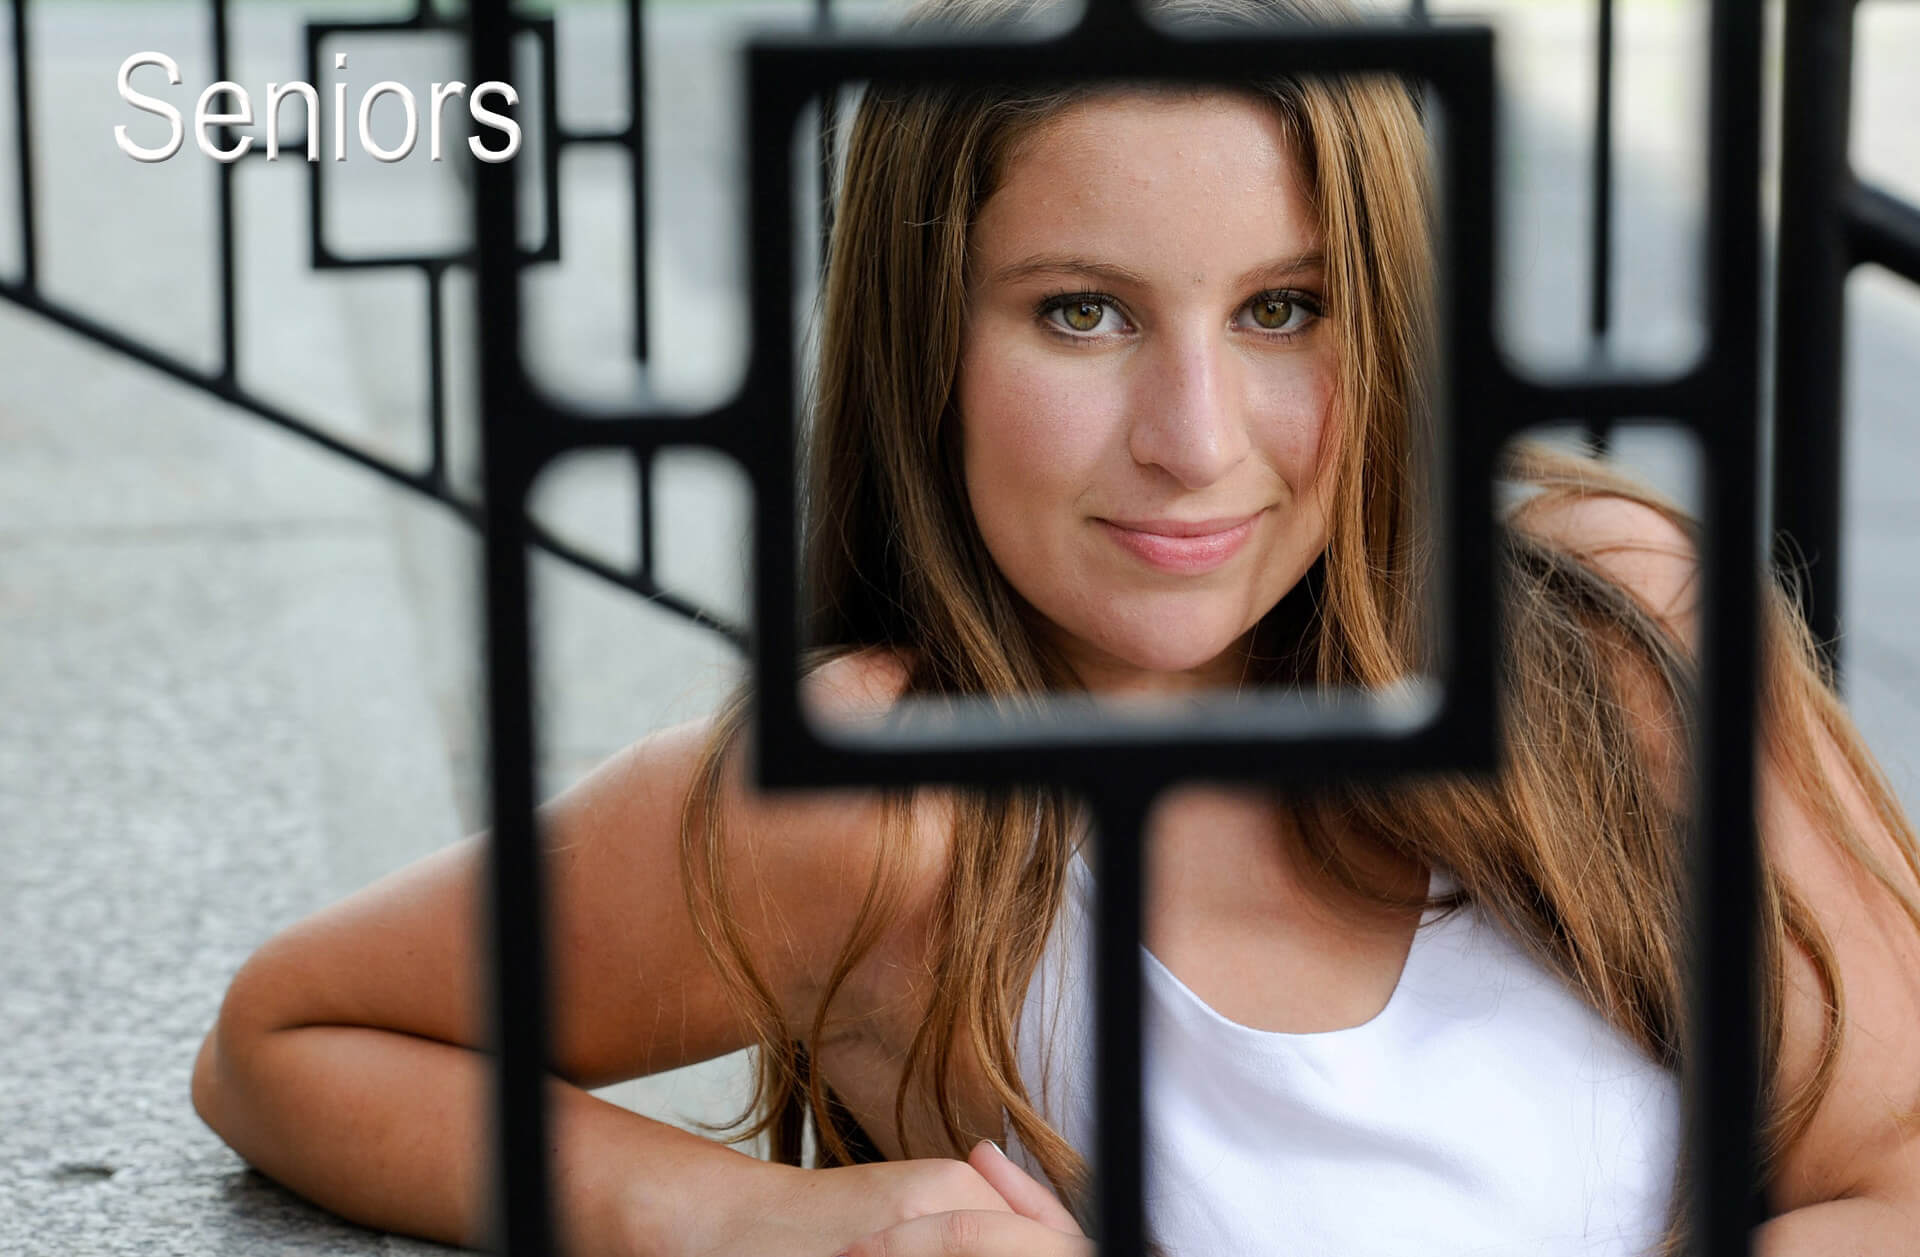 A Clarkston, Michigan senior poses for this dramatic senior photo in Birmingham, Michigan.